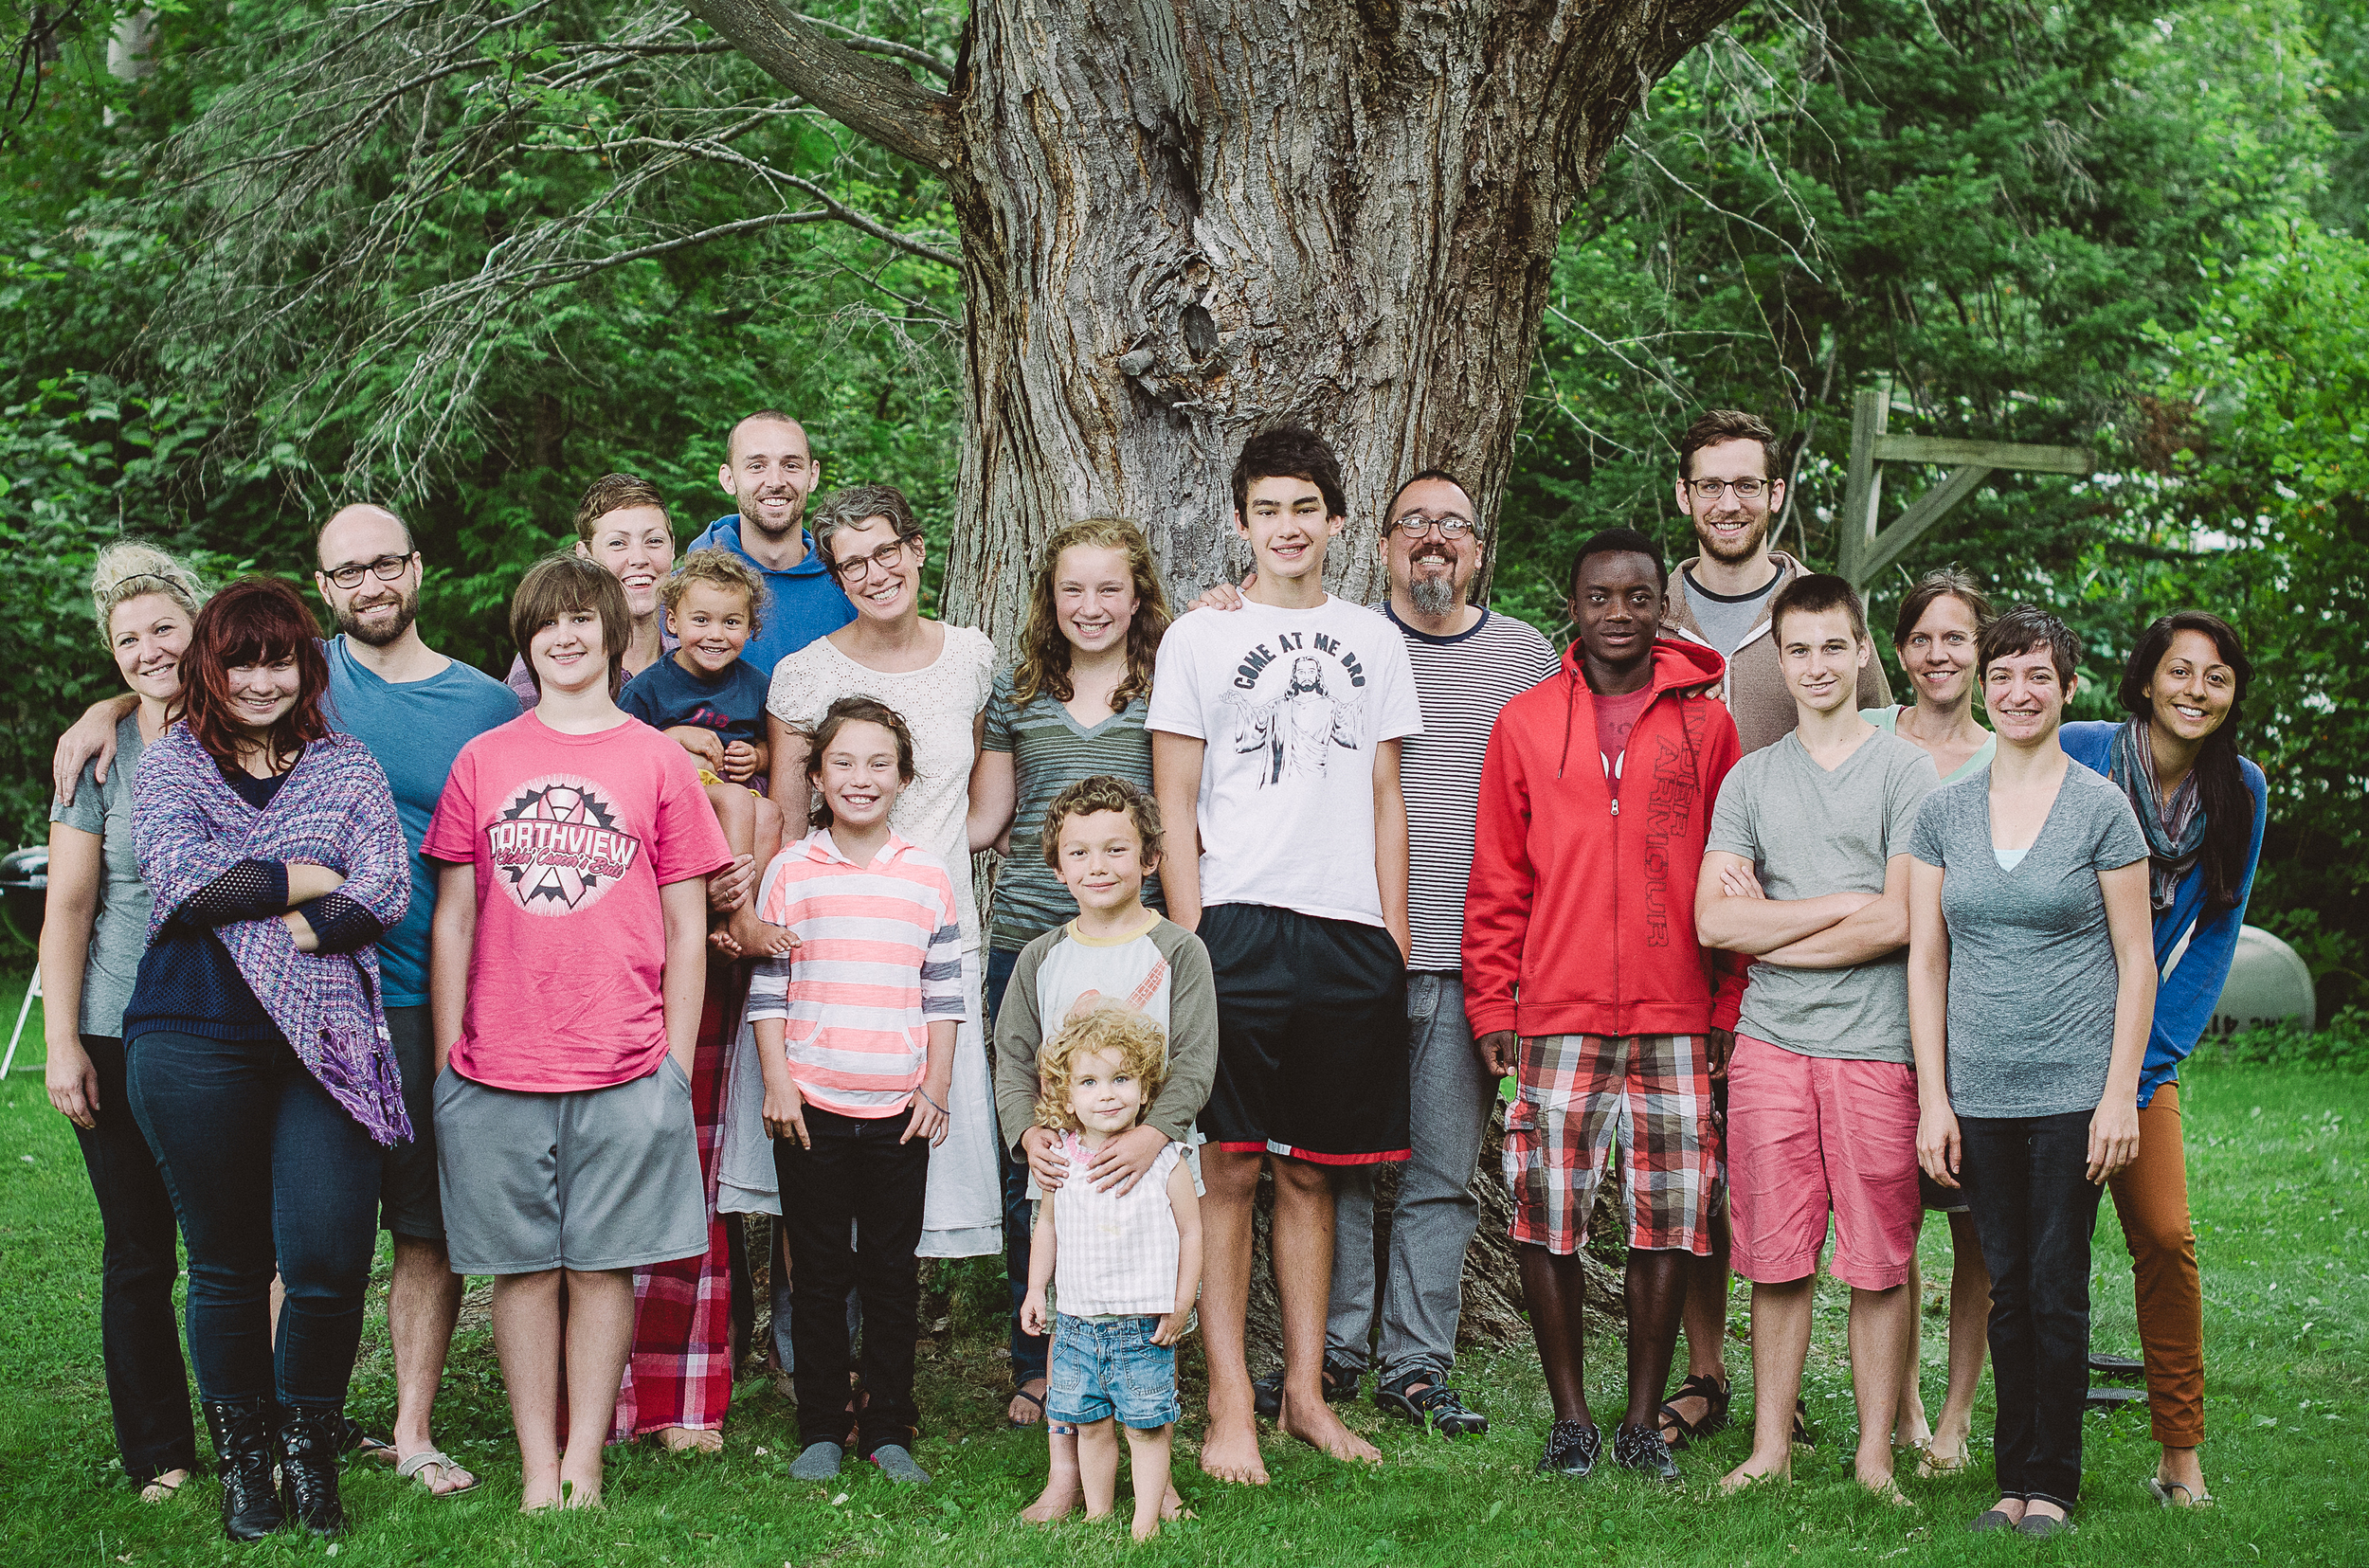 our core leadership team, inclusive of spouses and kids, on our retreat weekend.